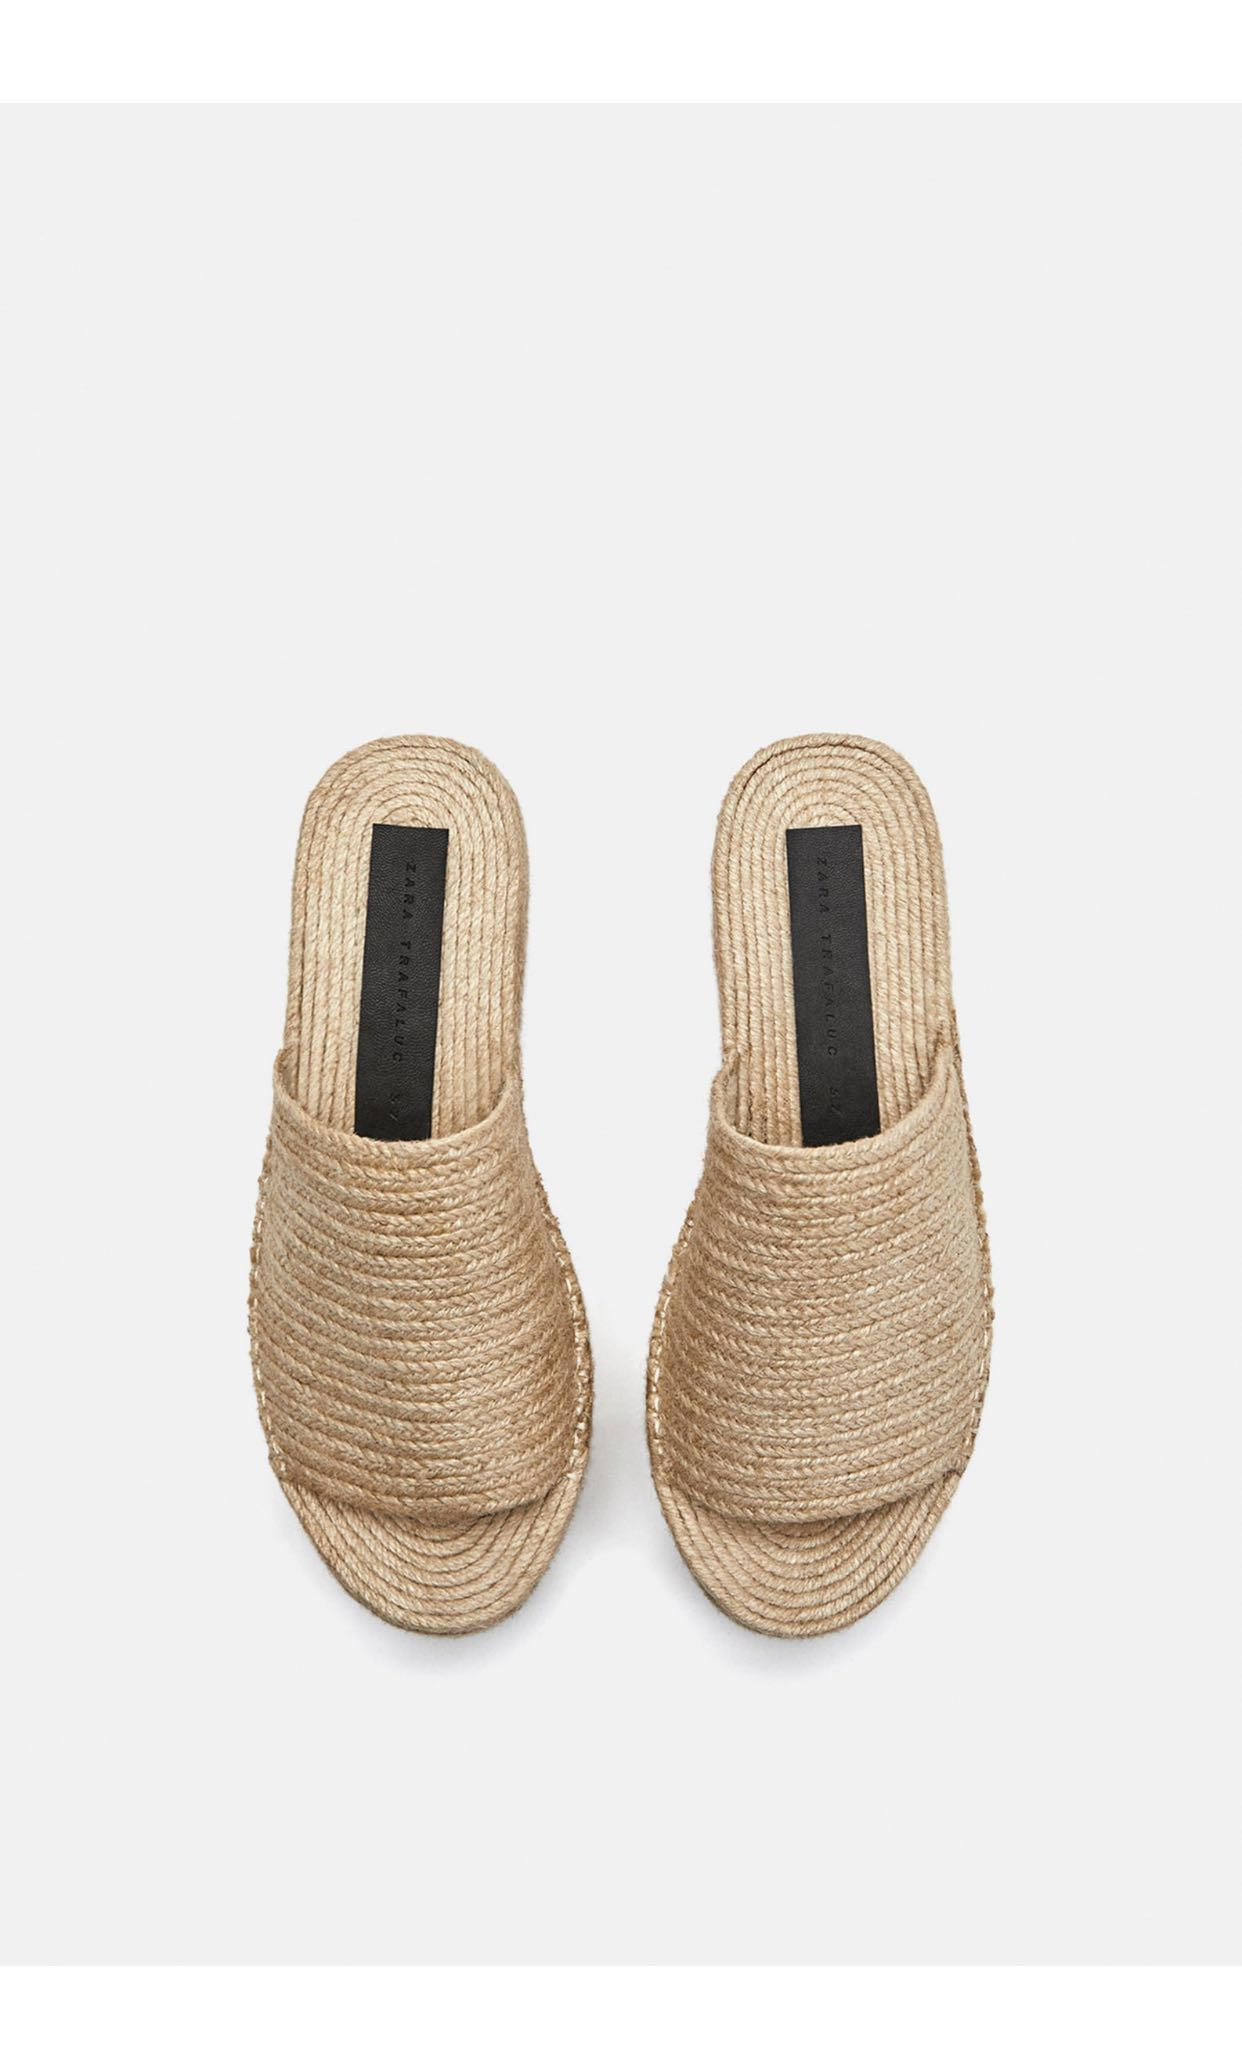 a6af6d342e Zara jute platform sandals, Women's Fashion, Shoes, Others on Carousell